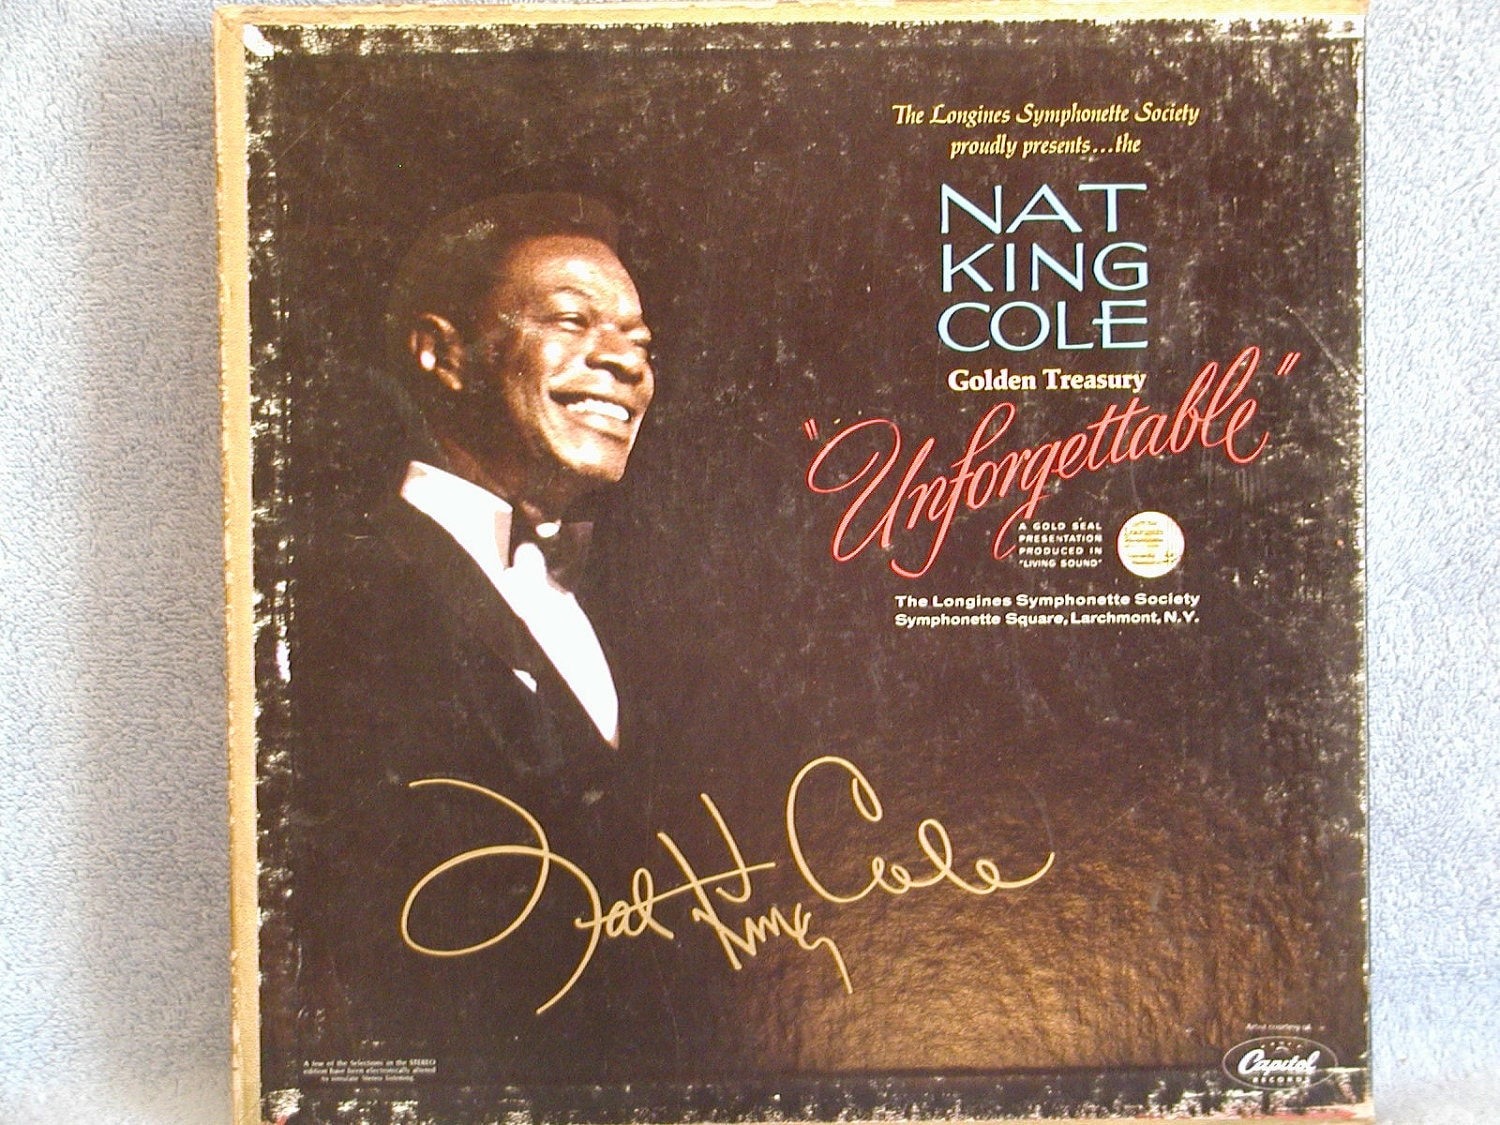 Nat King Cole Golden Treasury Unforgettable